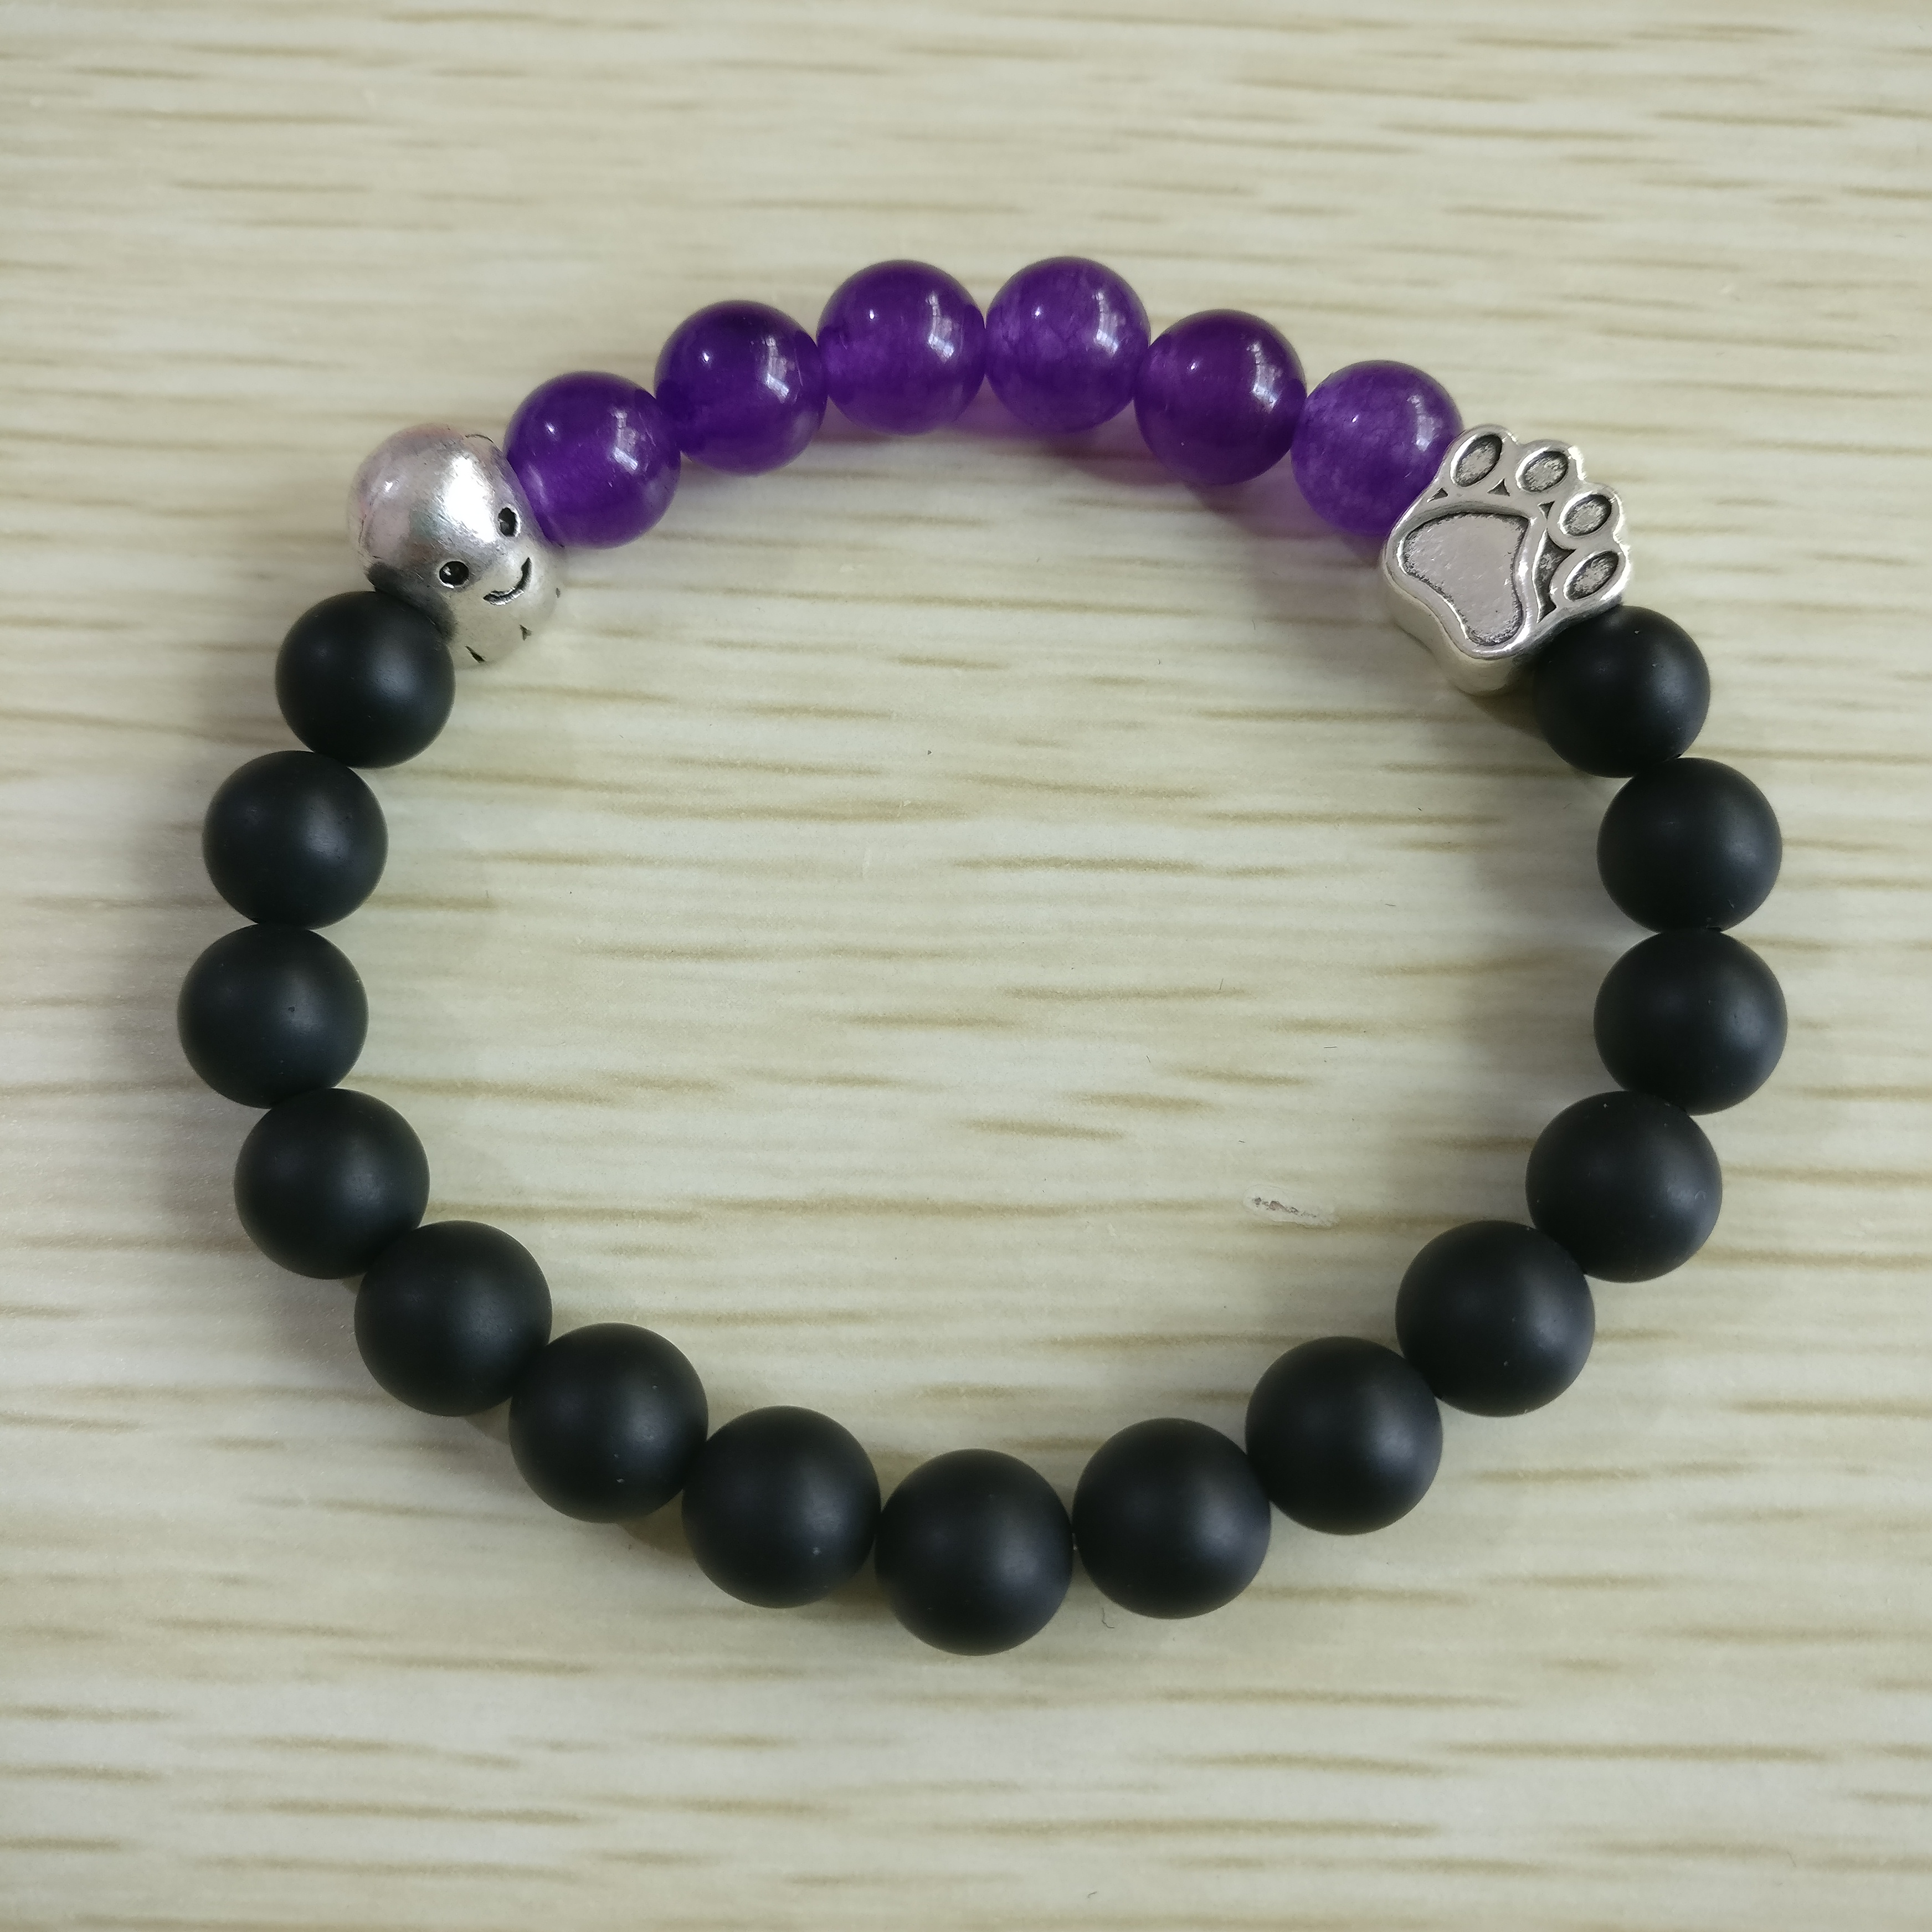 2019 New Arrivals Halloween 8mm Onyx Purple Beads Silver Pet Paws Ghost Elastic Bracelet